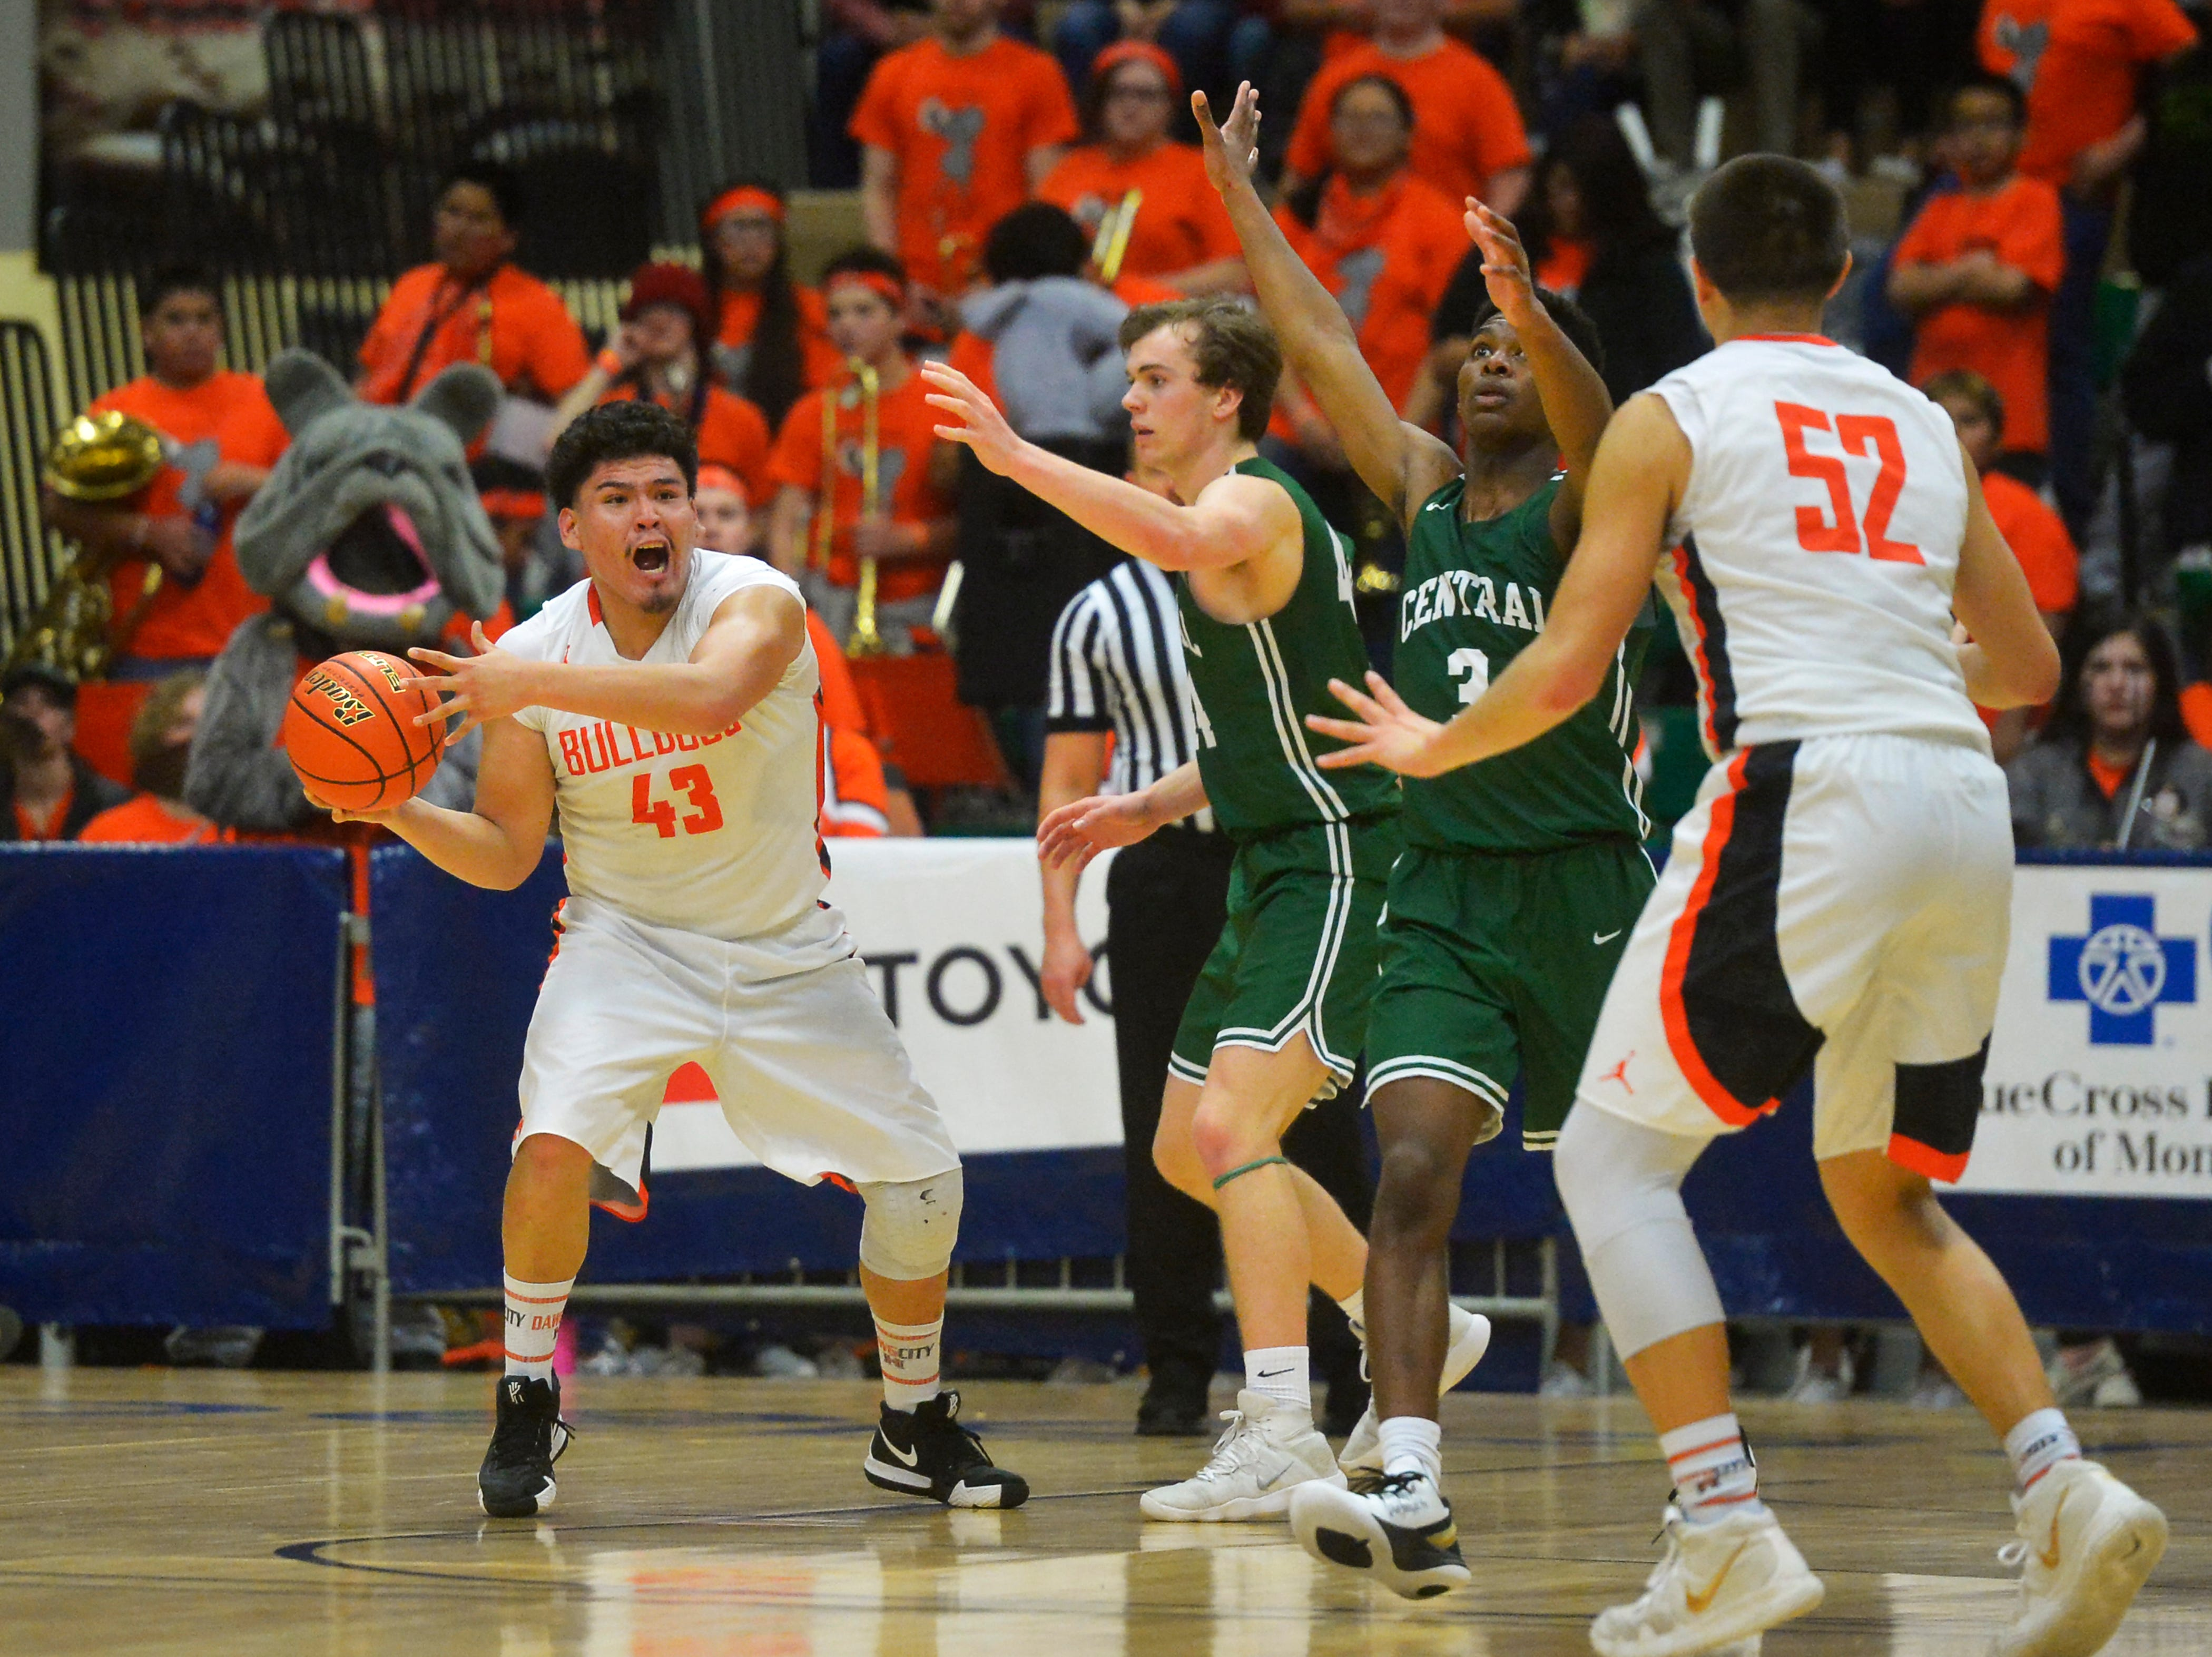 Hardin's Andrew House looks for an open teammate during the title game of the State Class A Basketball Tournament against Billings Central in the Four Seasons Arena, Saturday.